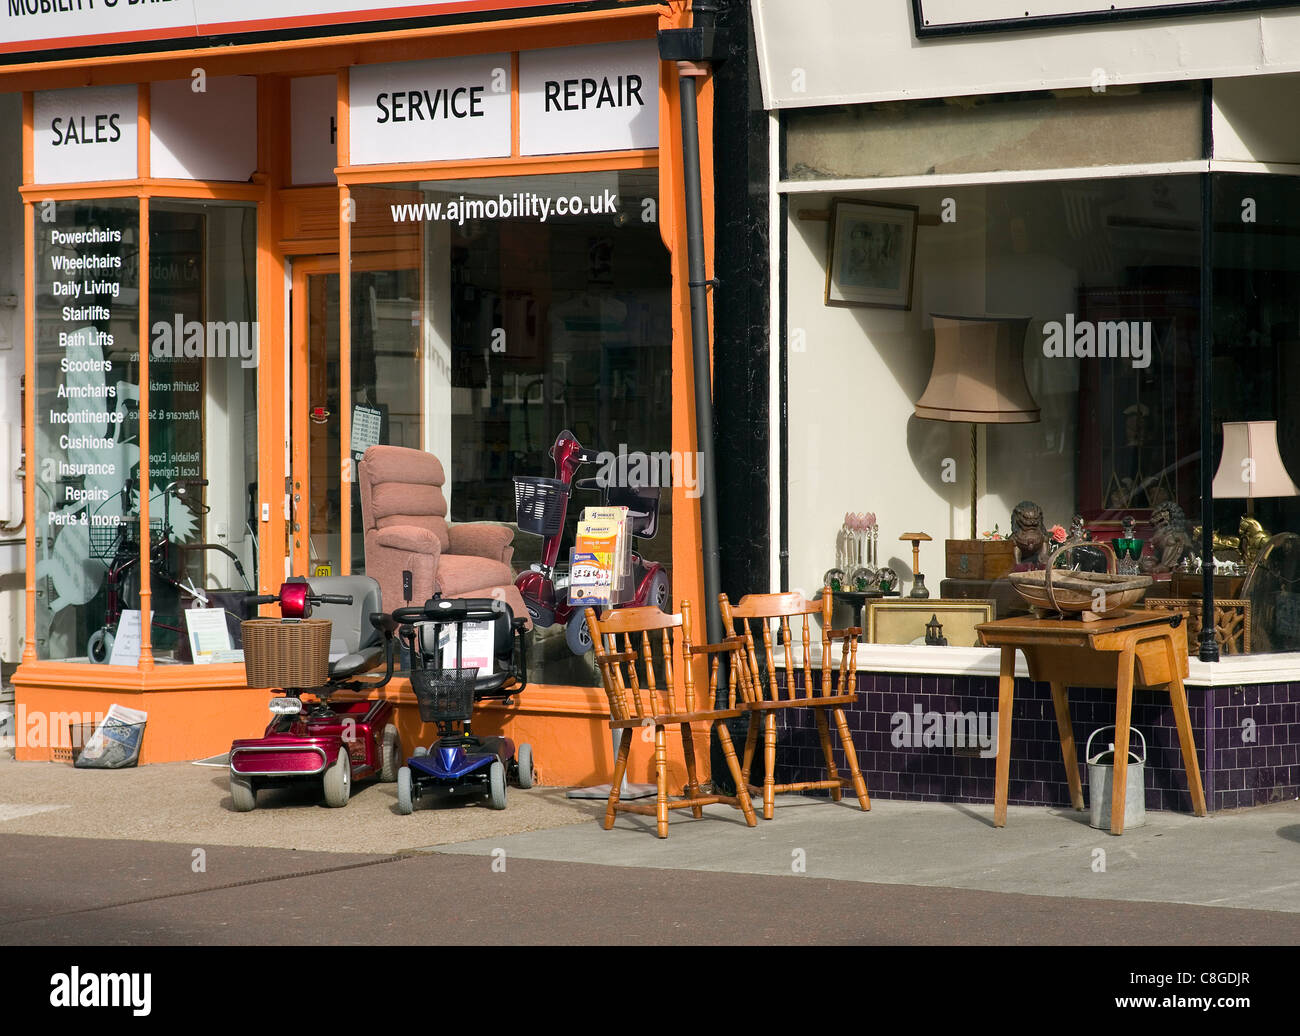 small shops selling mobility scooters useful equipment and used furniture - Stock Image